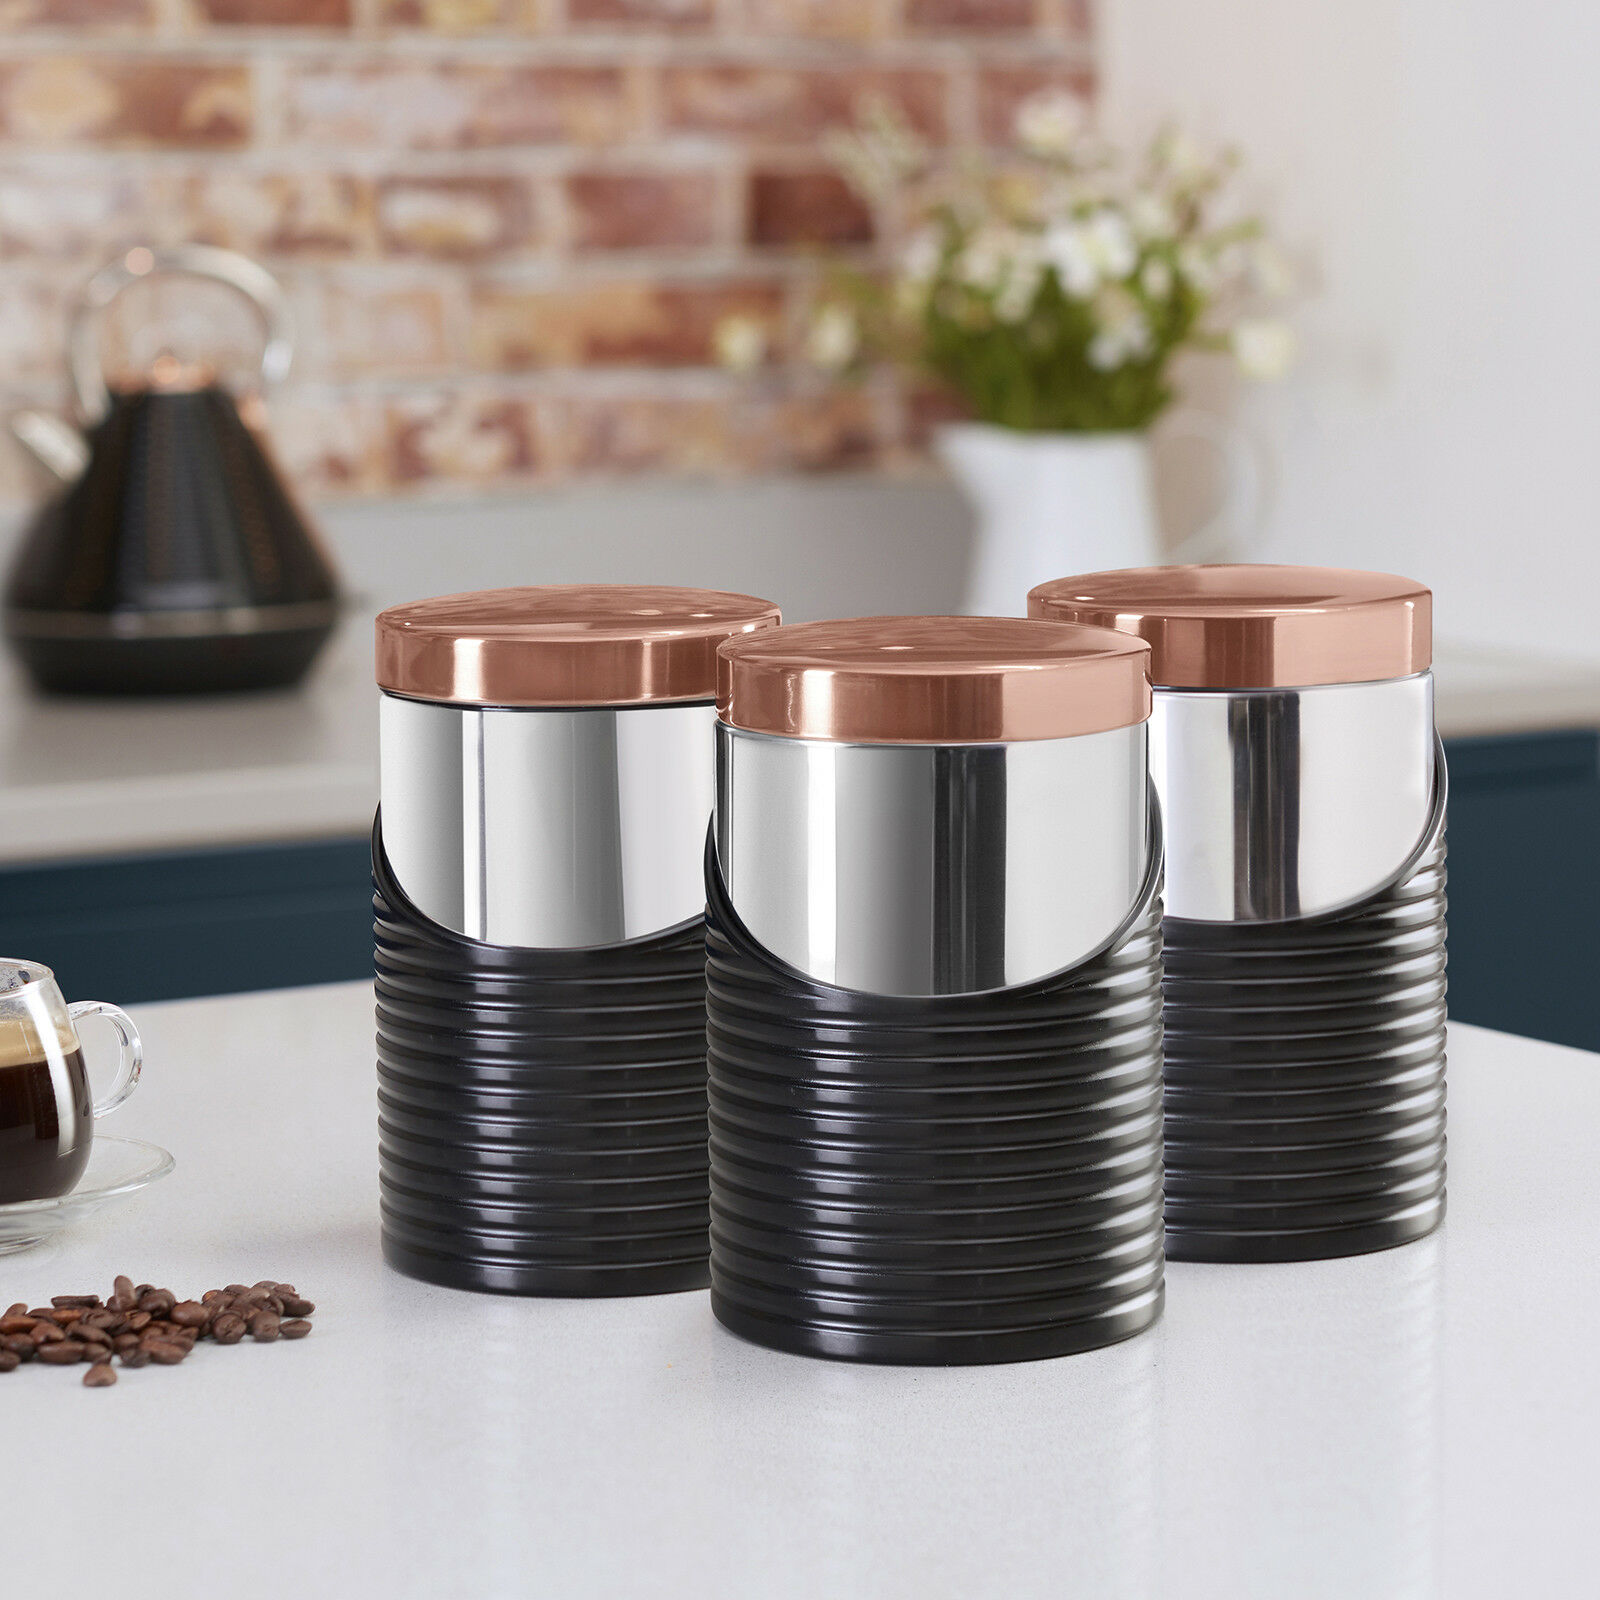 Tower T826001rb Linear Kitchen Canister Set Black Rose Gold Sugar Tea Coffee Ebay